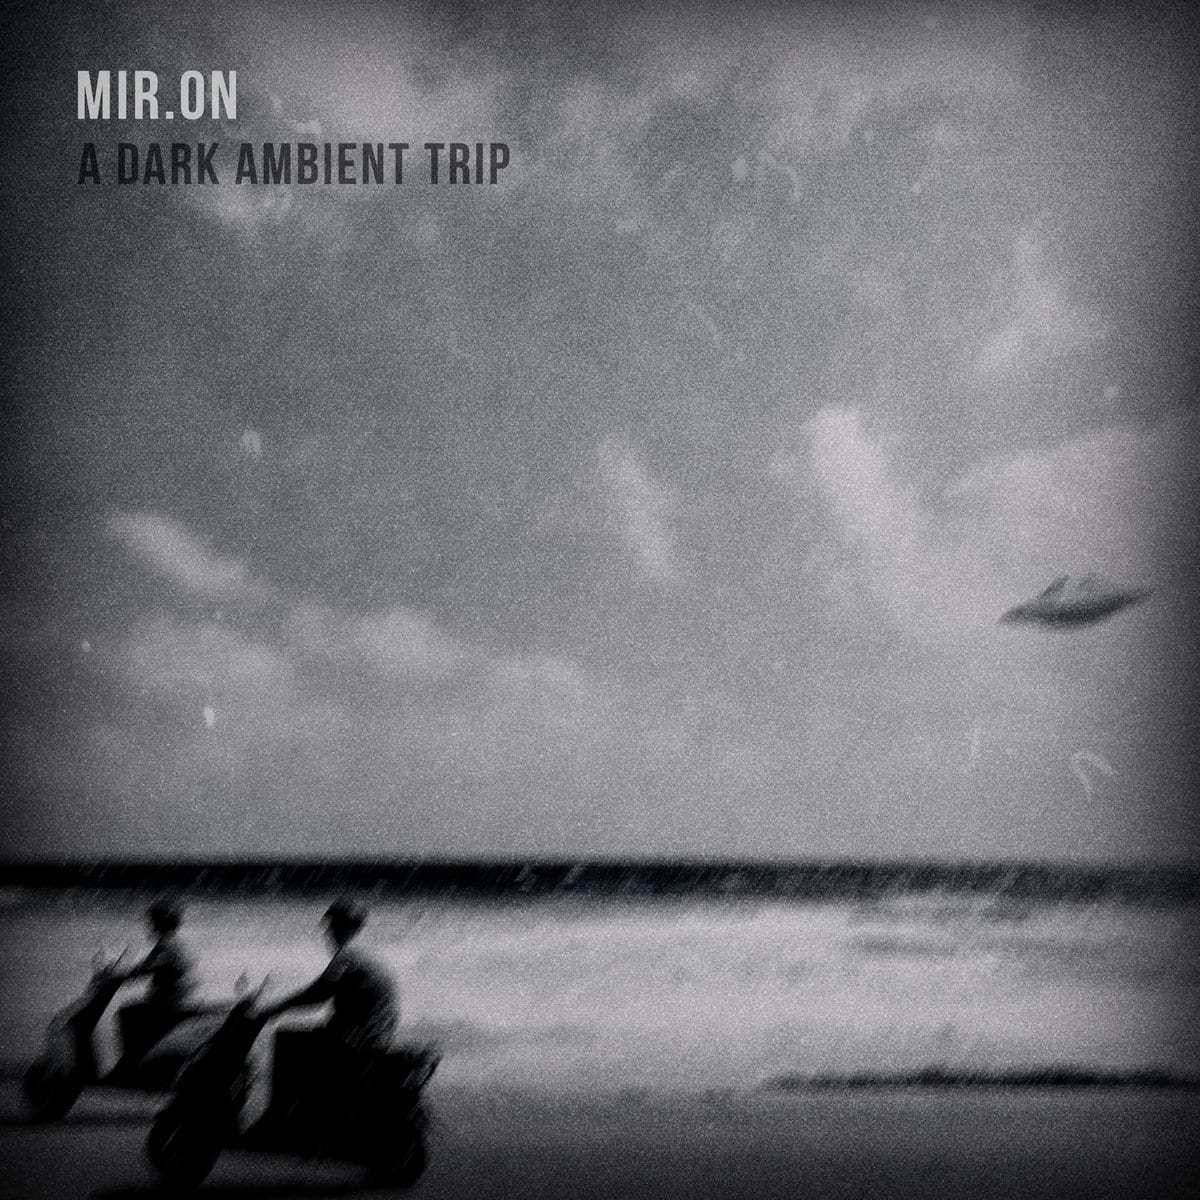 mir.on-a-dark-ambient-trip-album-cover